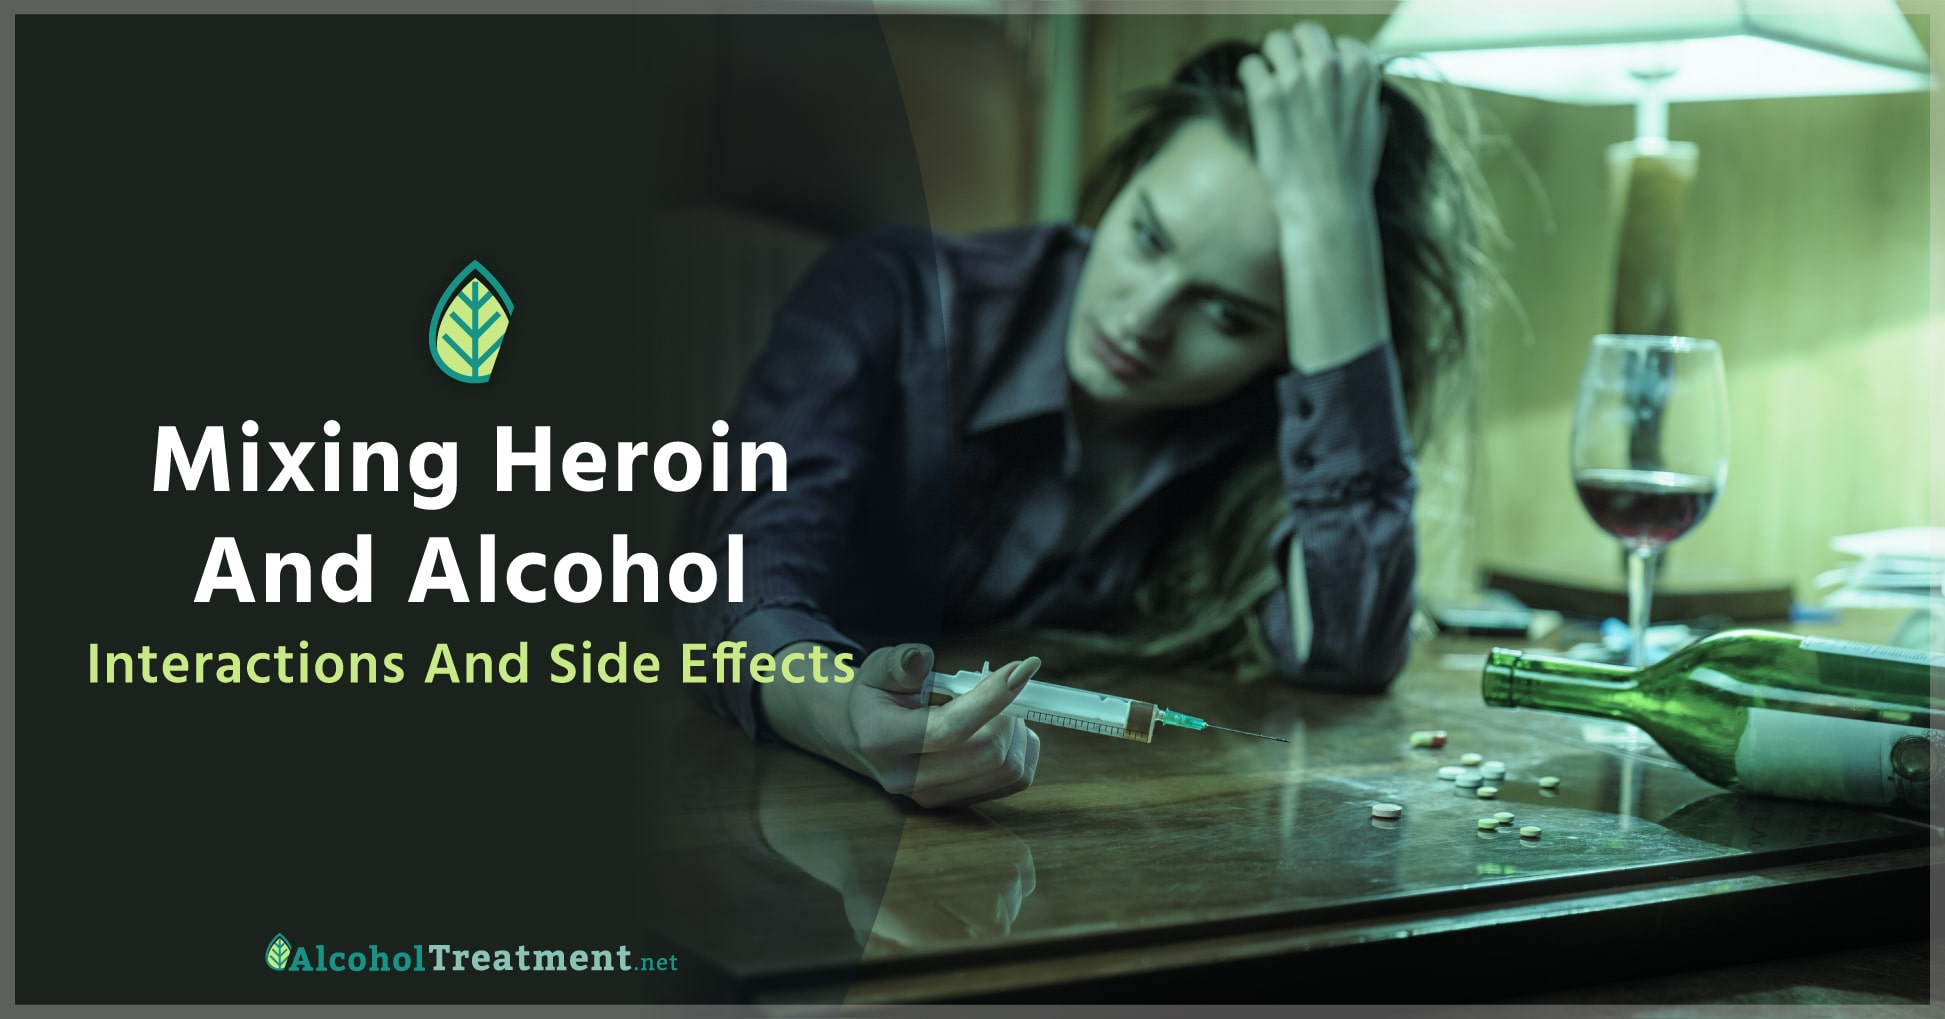 Dangers of Mixing Alcohol With Heroin